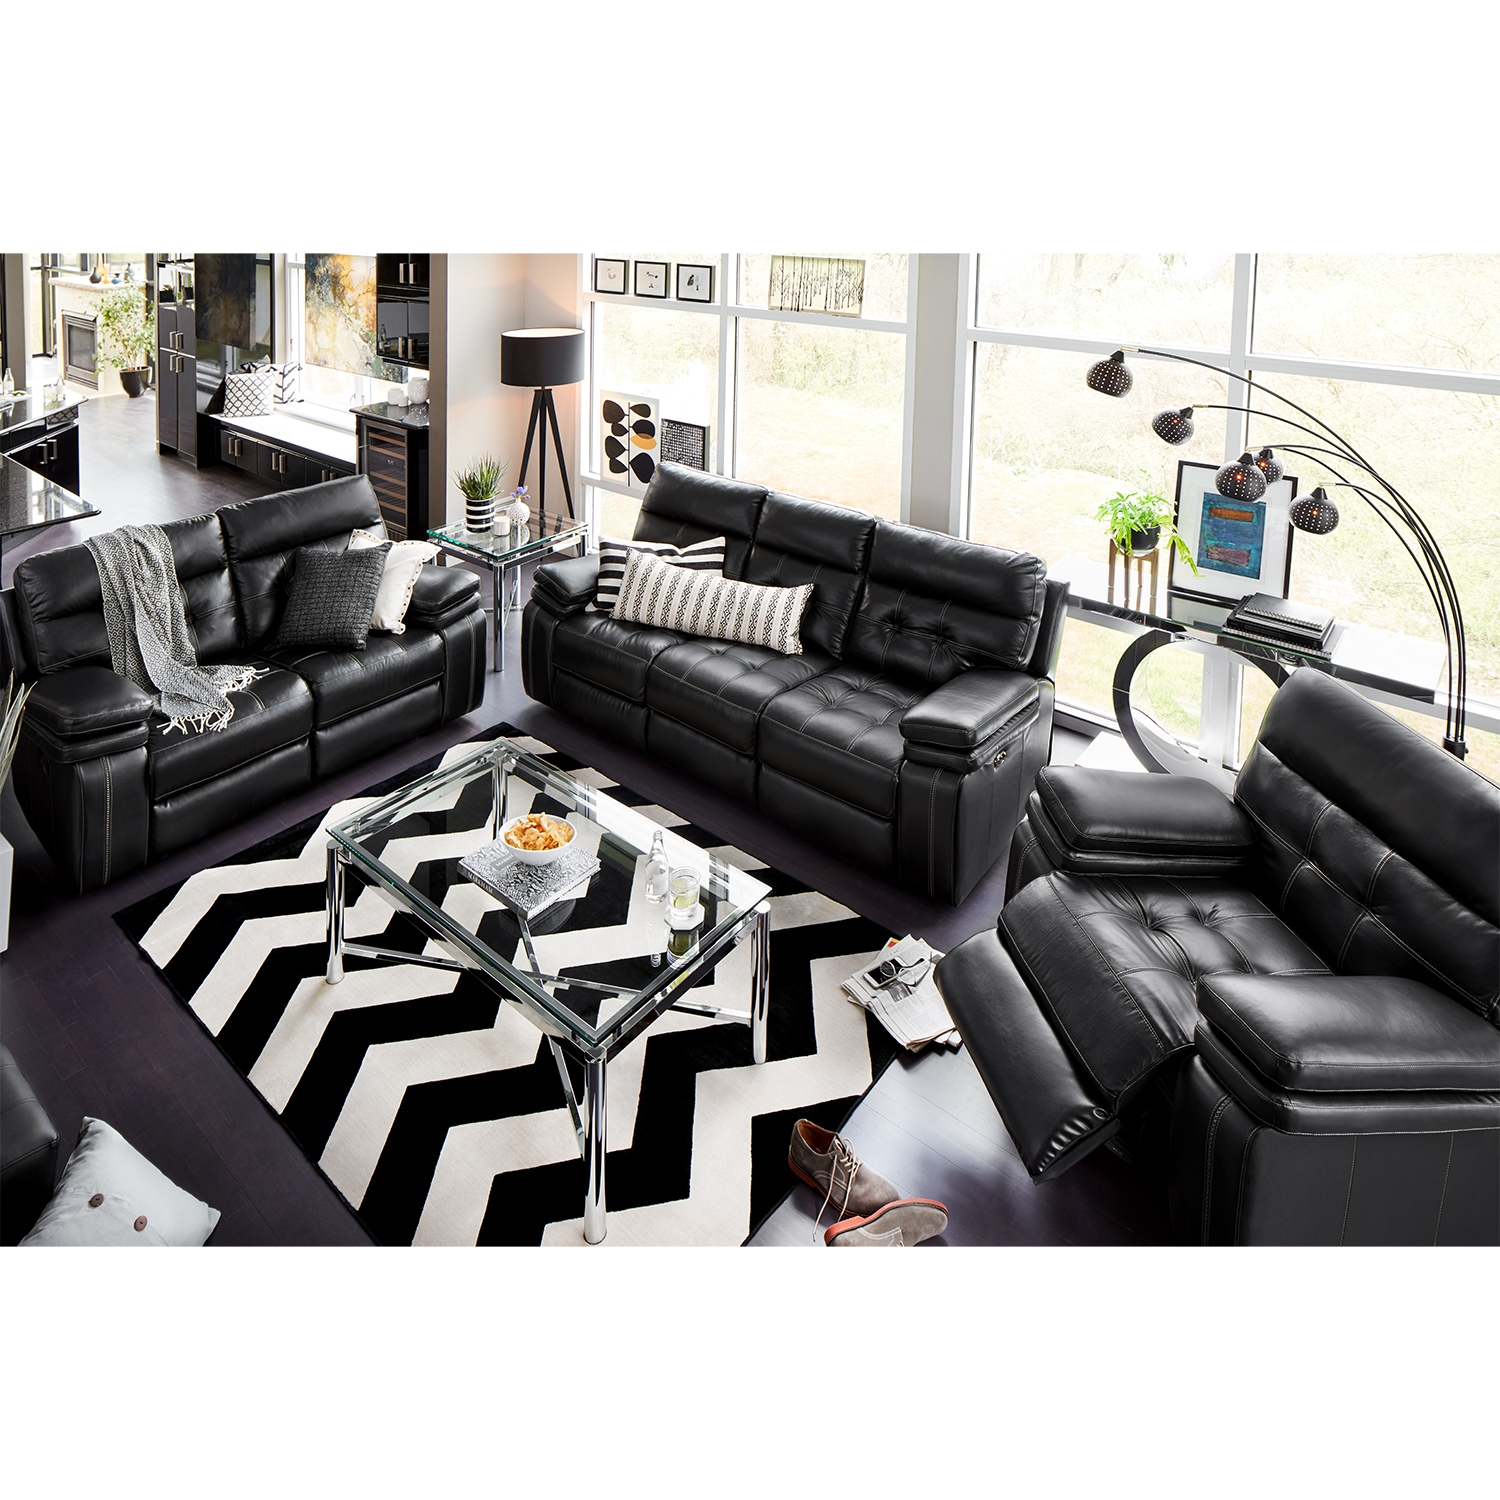 Living Room Furniture - Brisco Black 3 Pc. Power Reclining Living Room